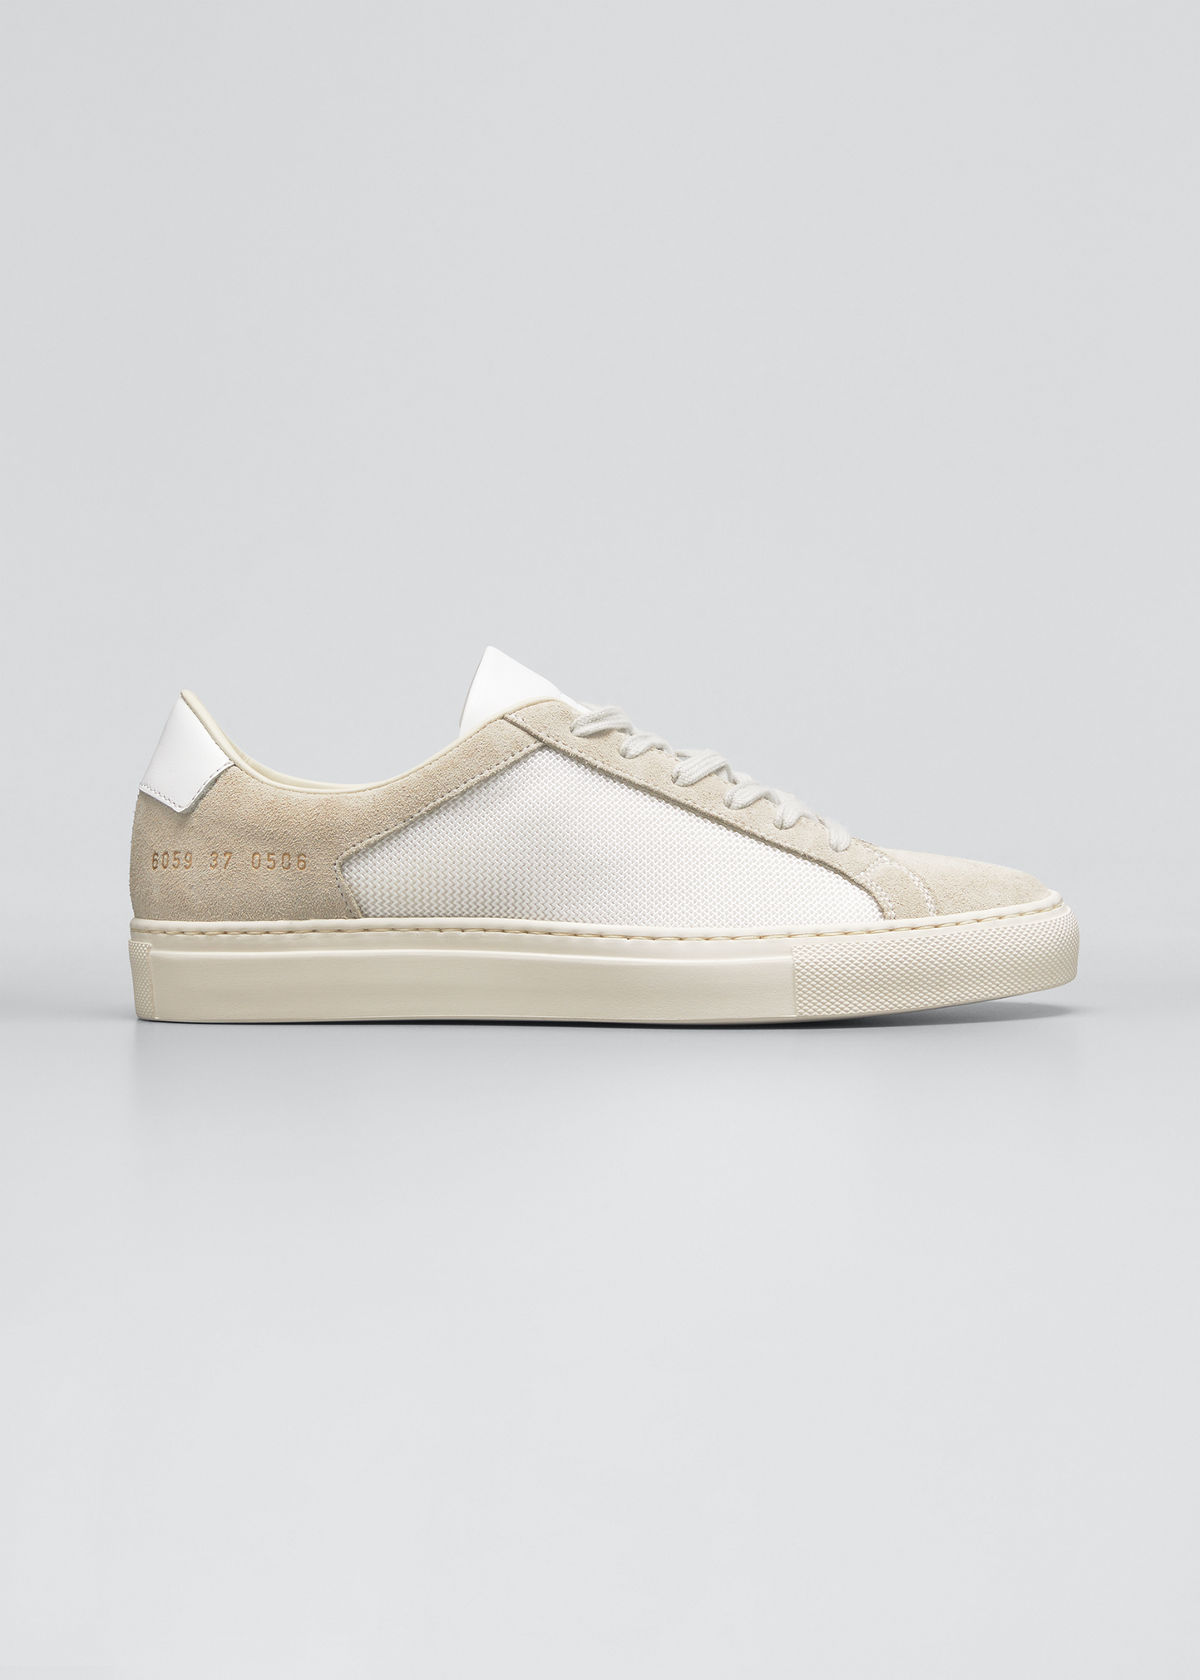 Common Projects Leathers RETRO SUMMER EDITION BICOLOR LOW-TOP SNEAKERS